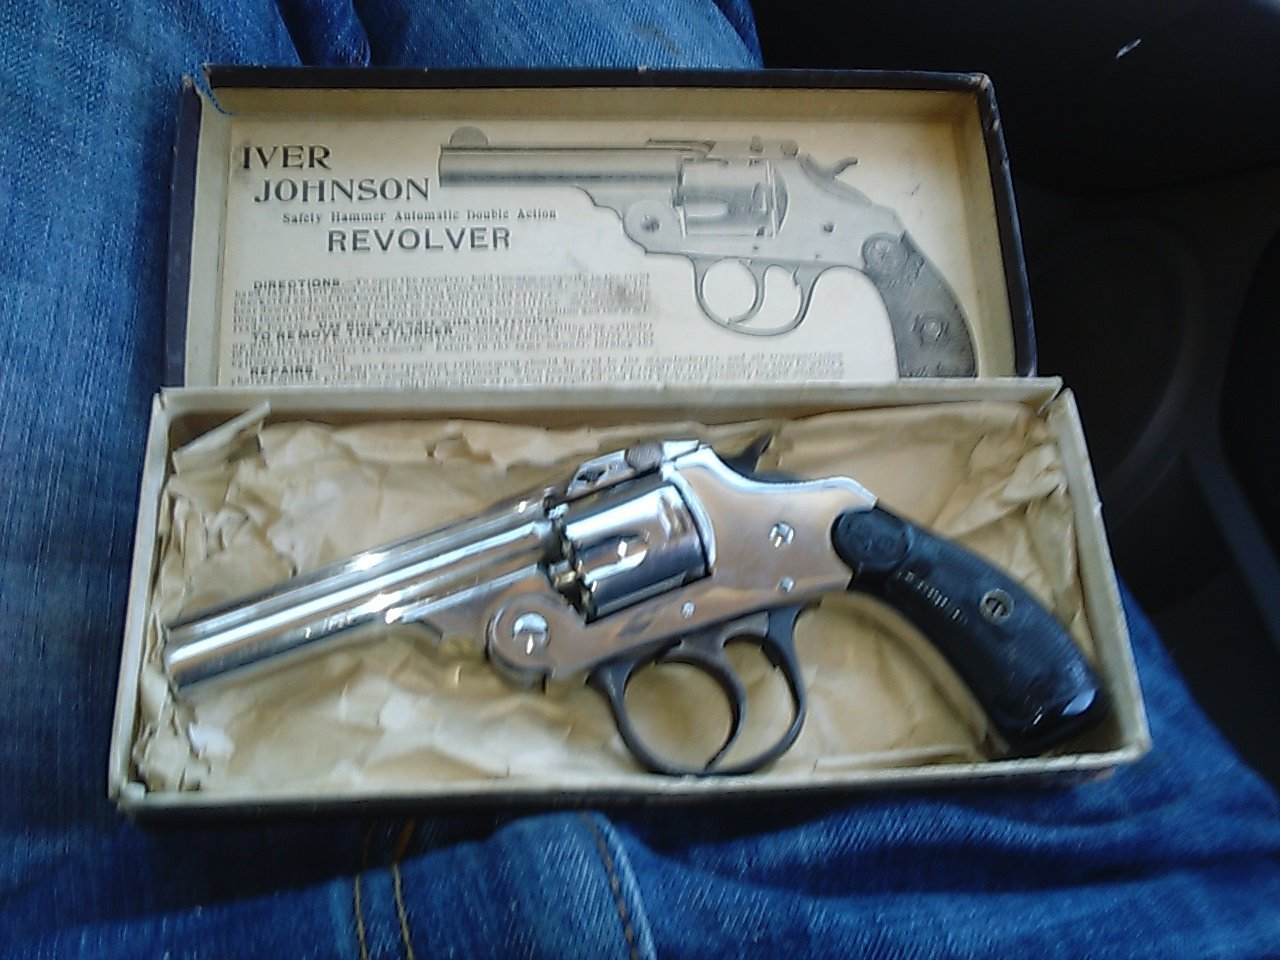 I Have An Iver Johnson Revolver Safety Hammer Automatic